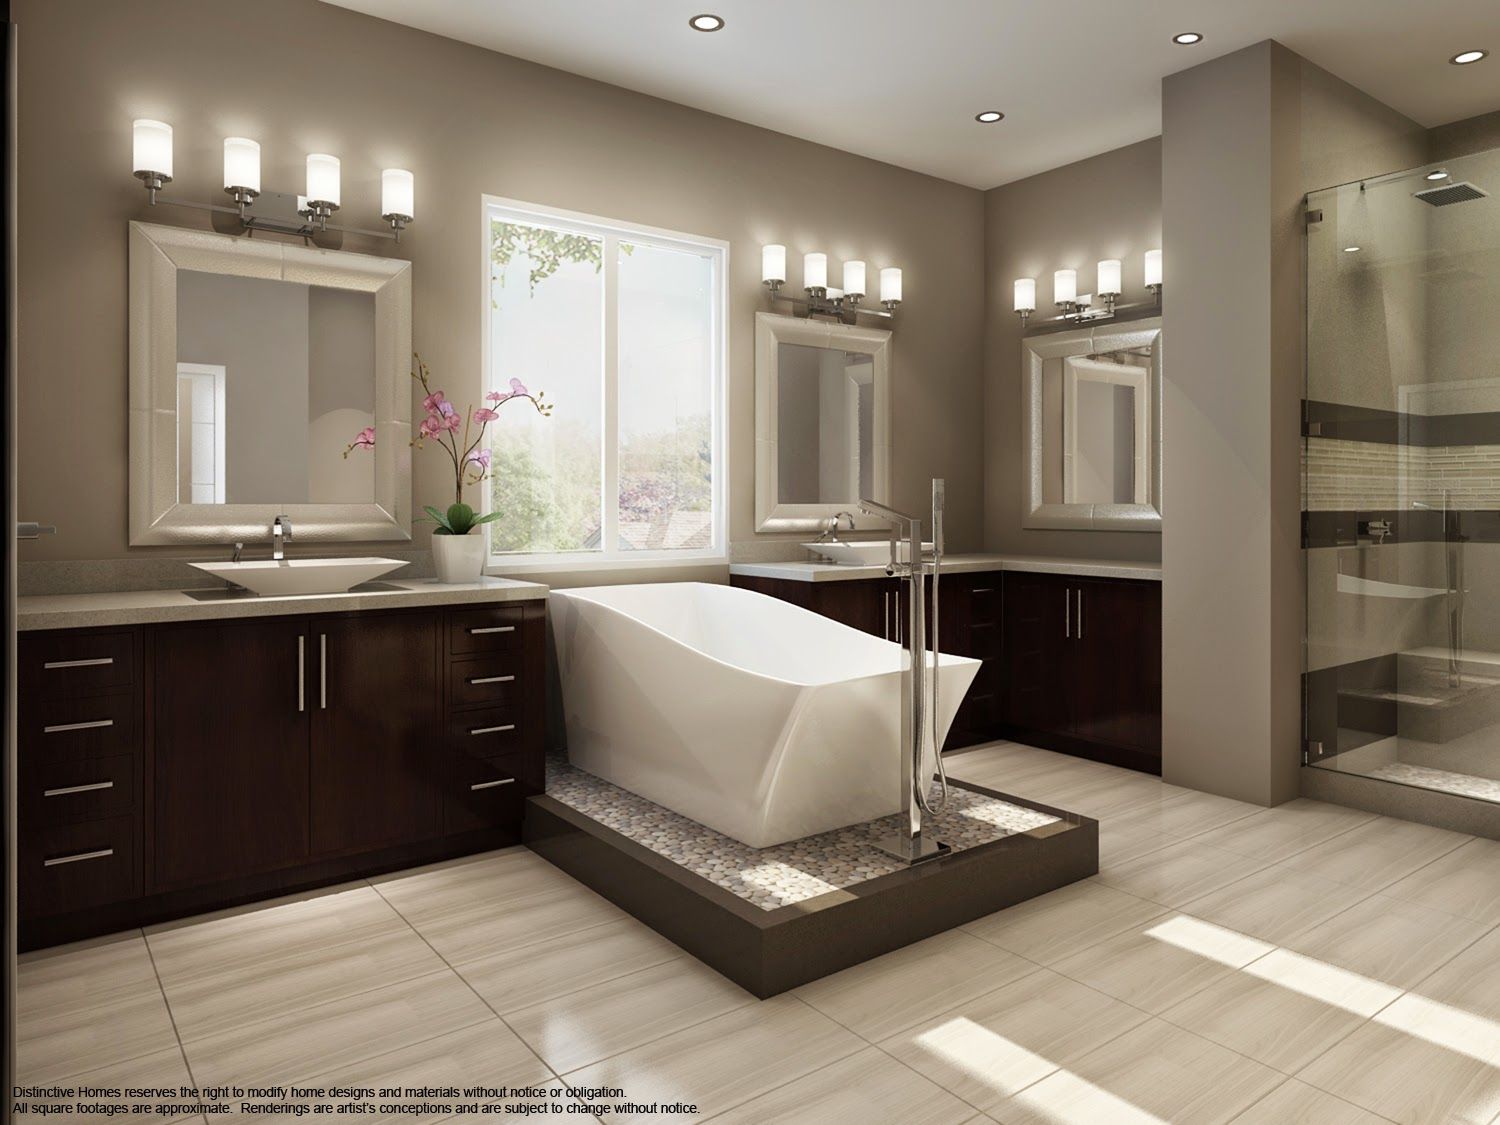 Model Home Bathroom news & information: distinctive homes contemporary bathroom design